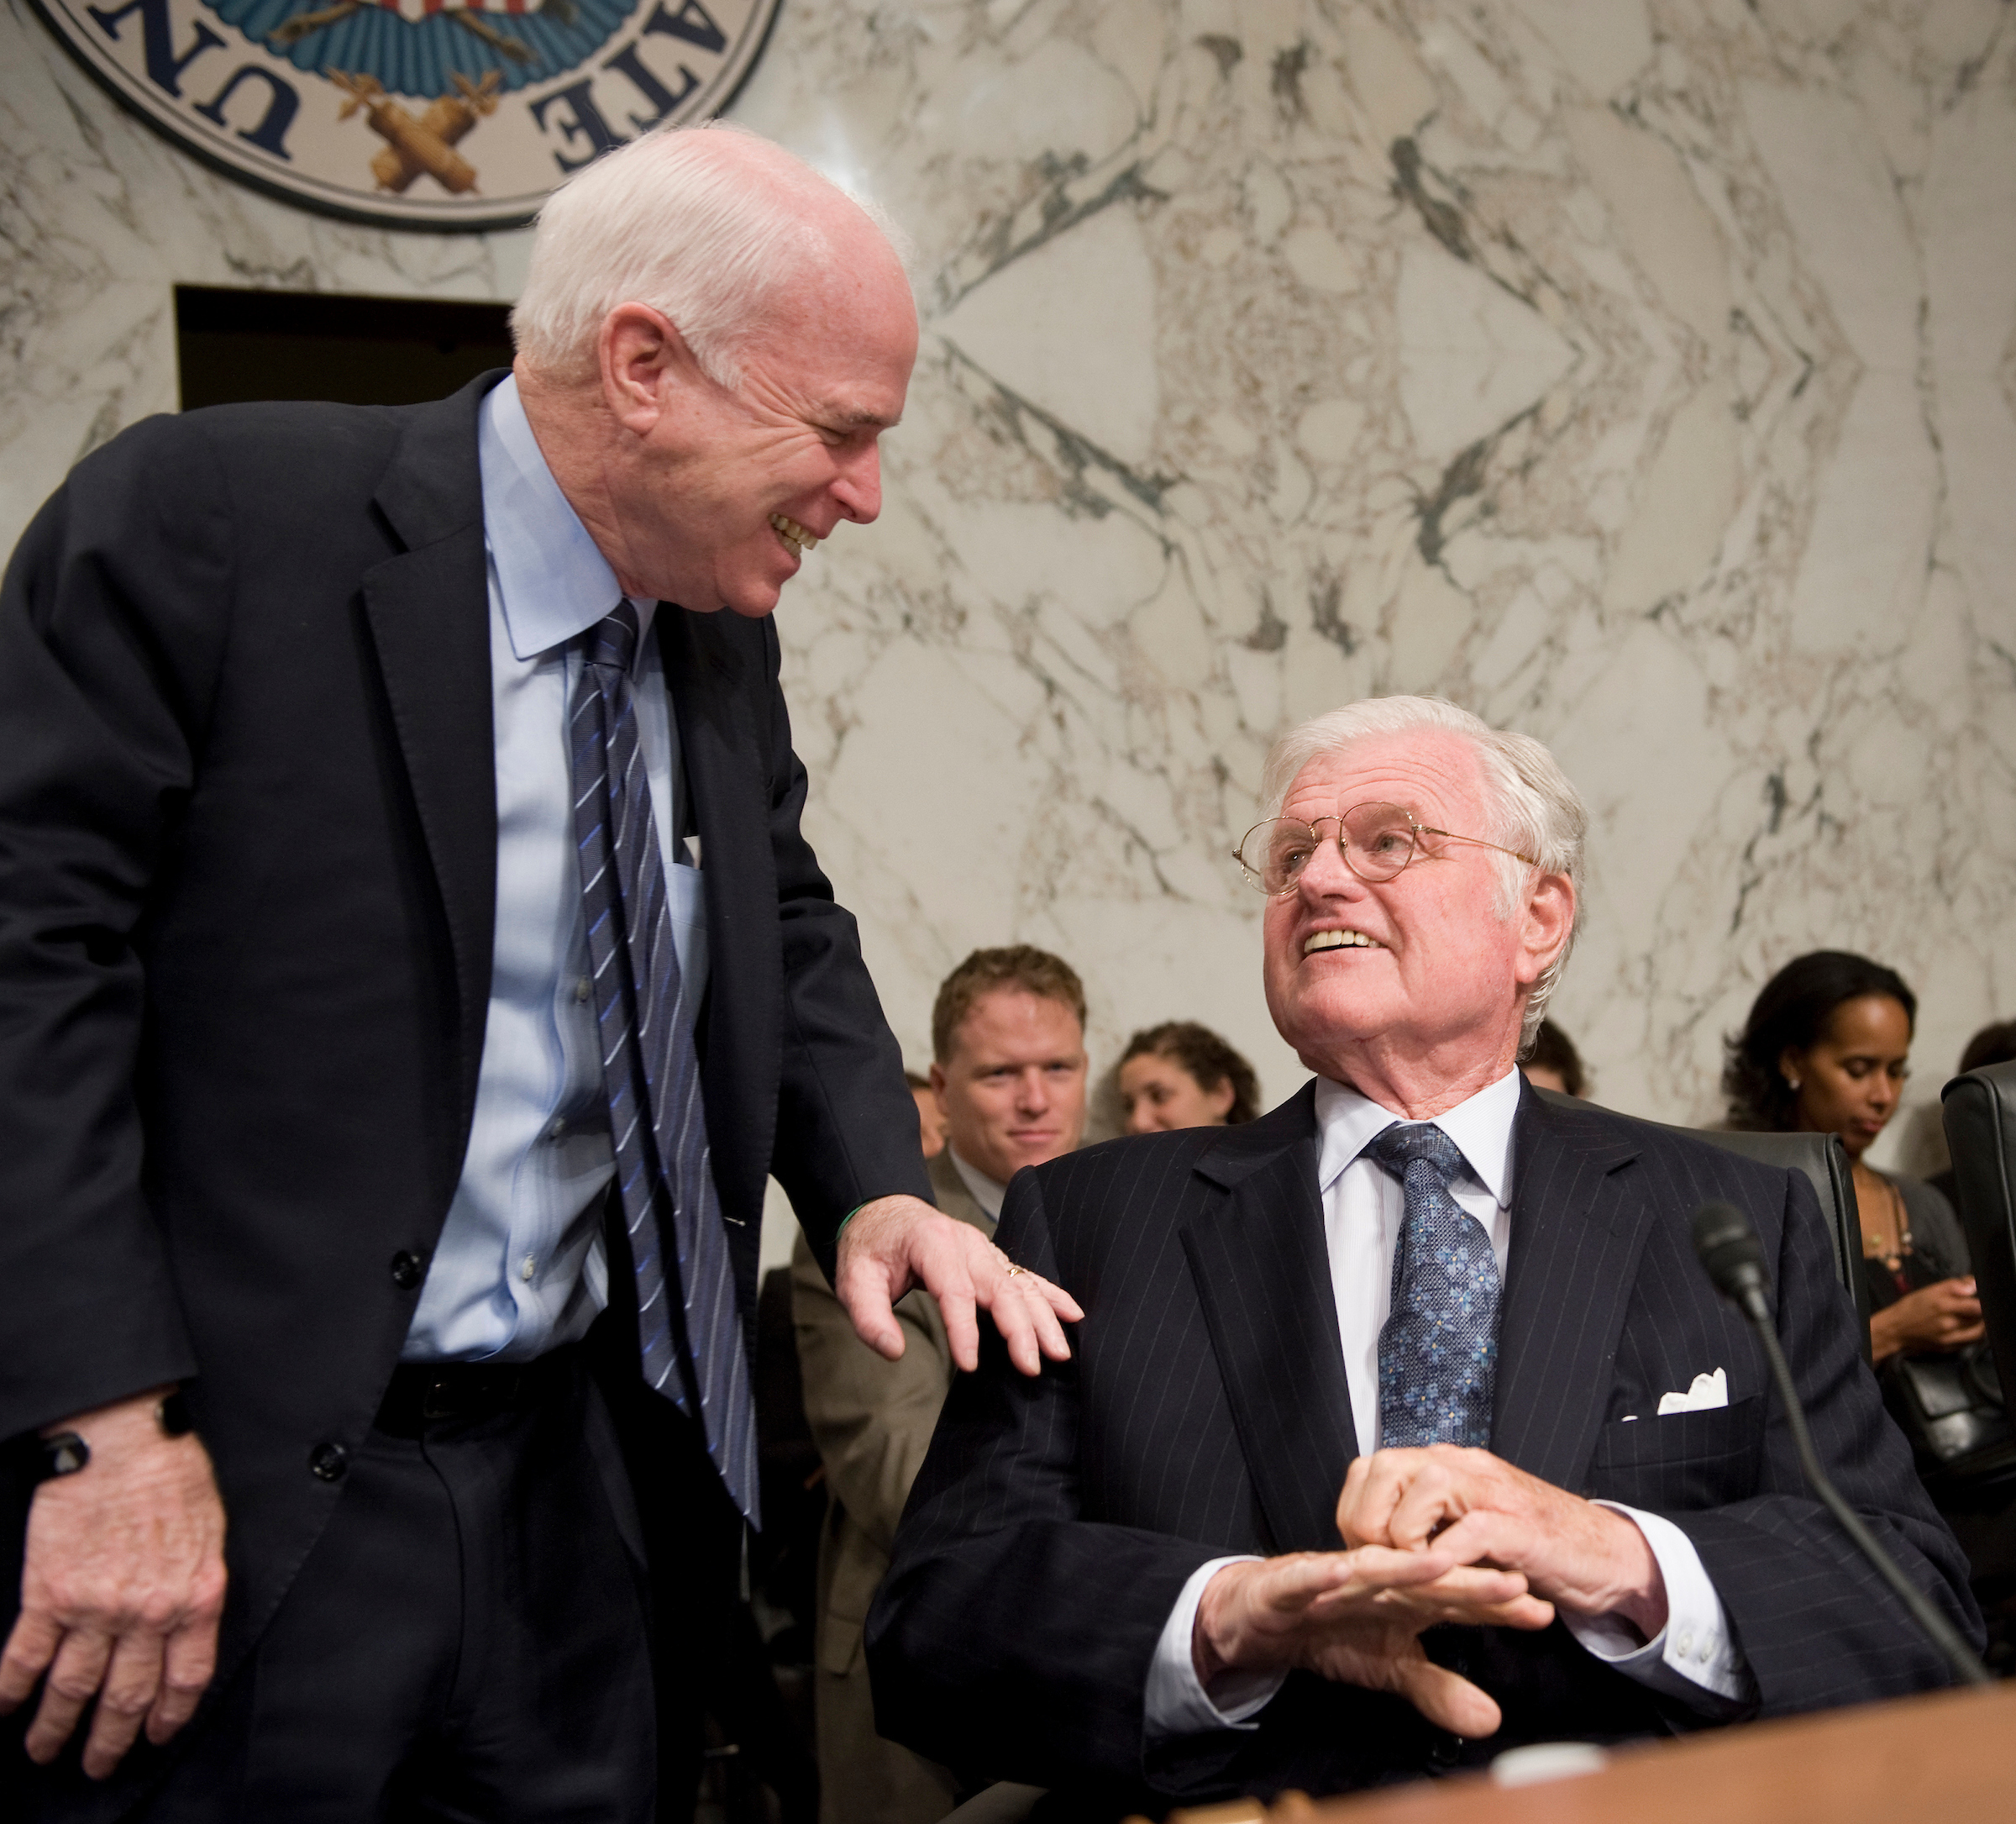 Sen. John McCain, R-Ariz., talks with Sen. Ted Kennedy, D-Mass., chairman of the Senate Health, Education, Labor, and Pensions Committee, during the confirmation hearing of Kathleen Sebelius, nominee for Secretary of Health and Human Services, March 31, 2009.